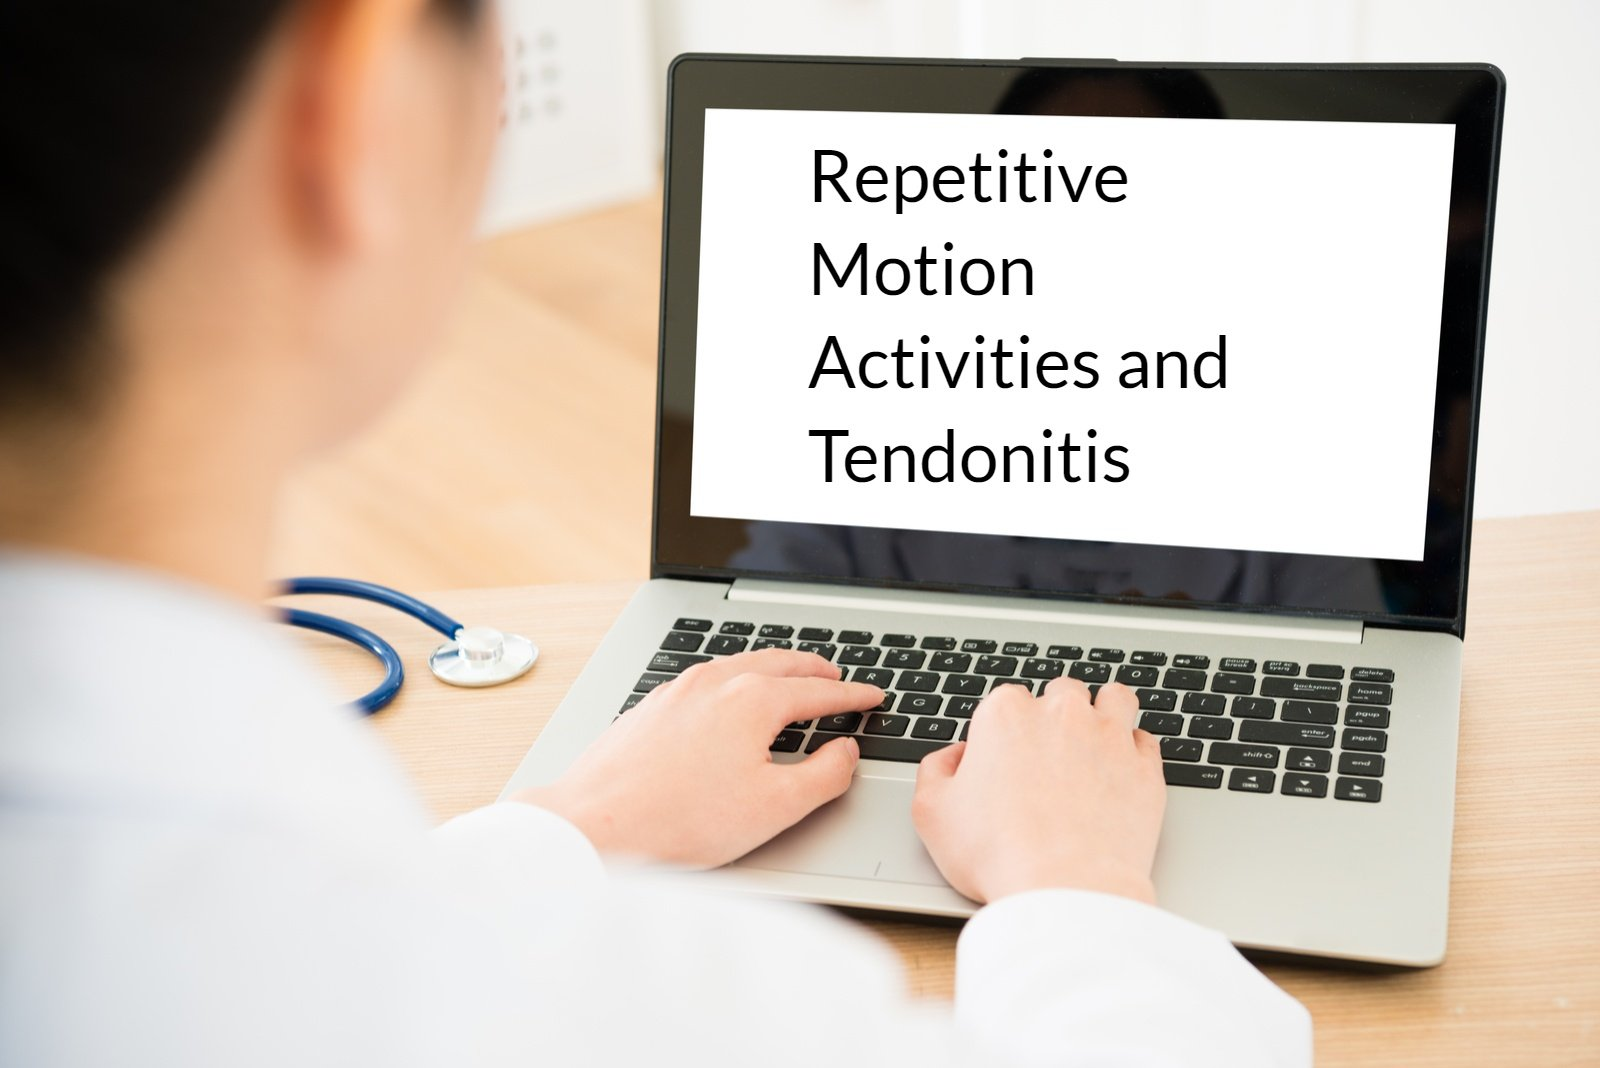 common repetitive motion activities and tendonitis